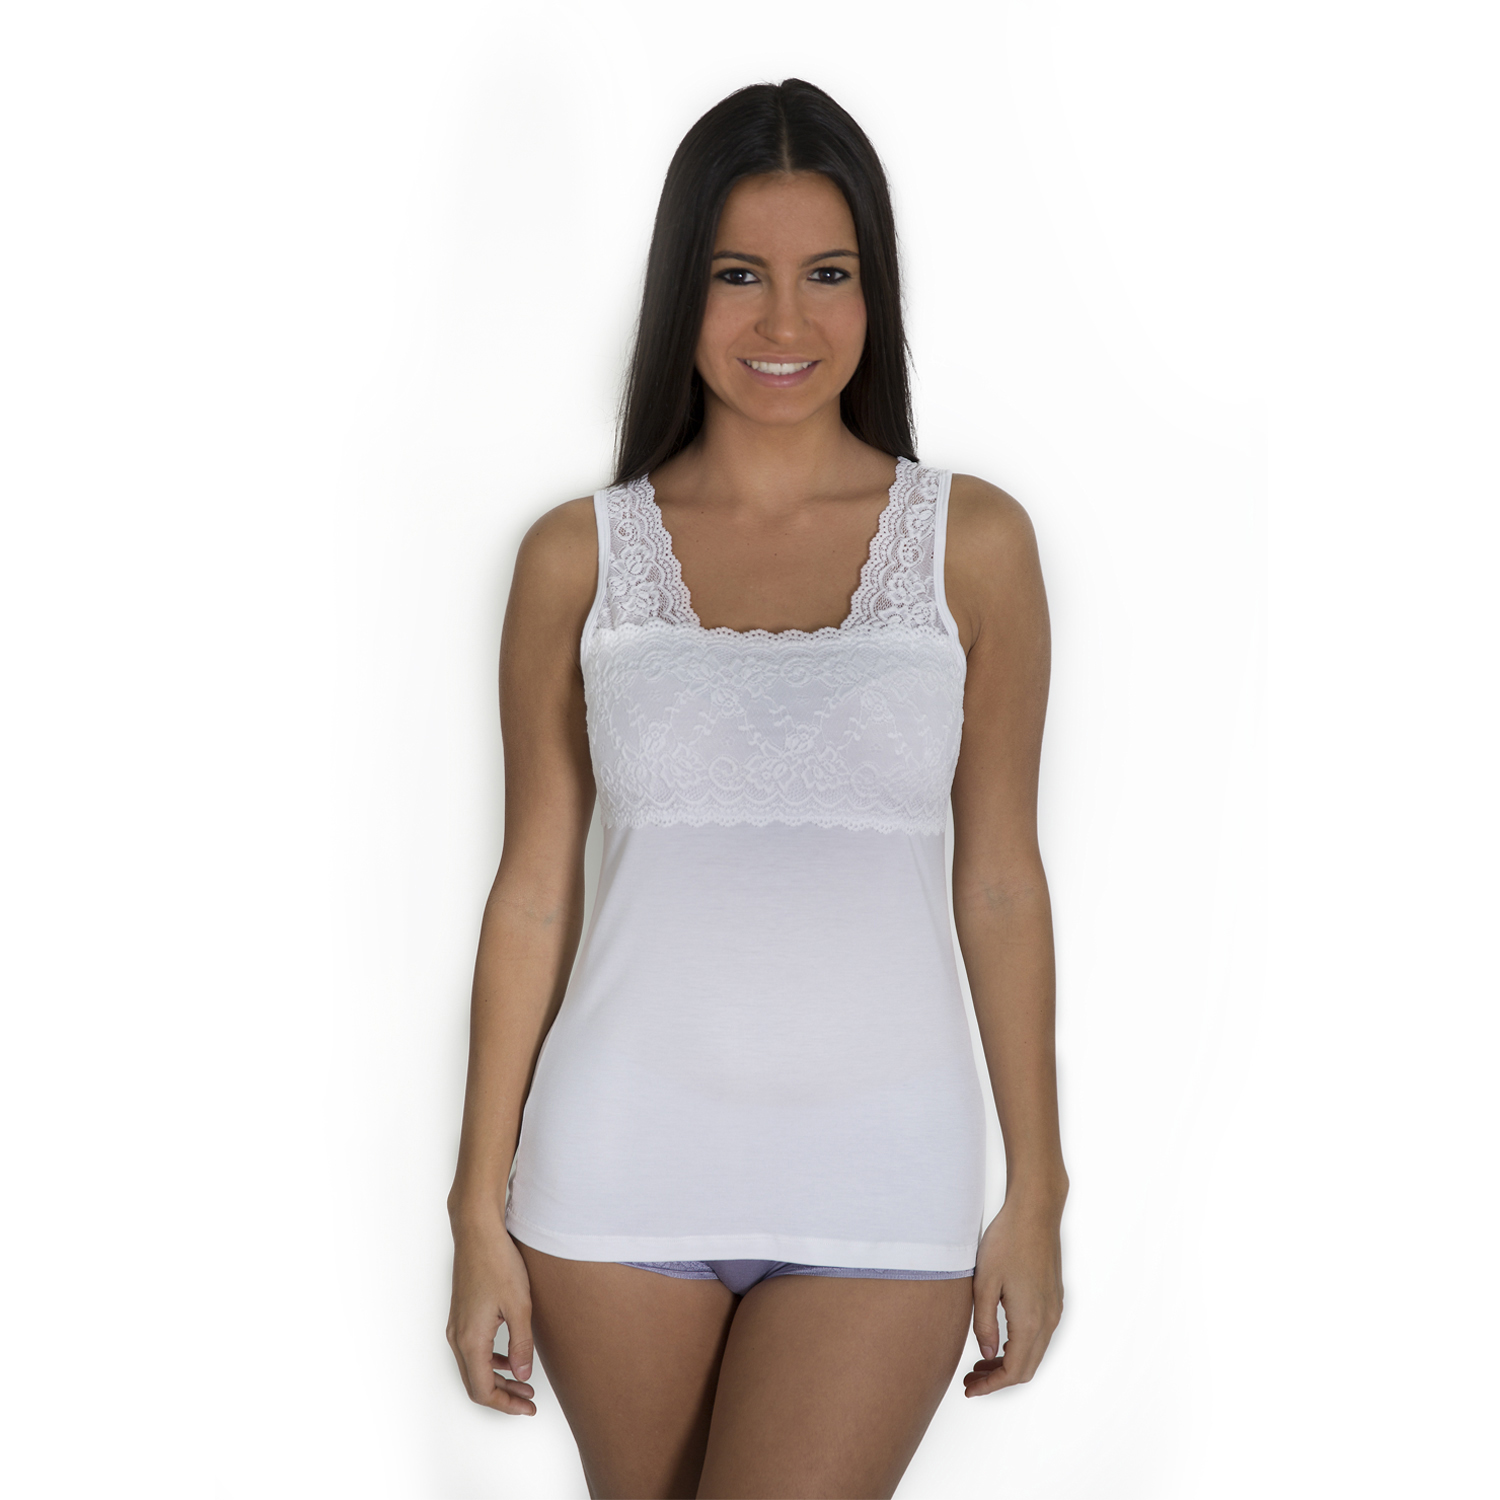 Lace Camisole. Add a light feminine touch to any completed outfit by slipping into a lace camisole. This camisole style has all the frills and sophistication needed to add a little extra feminine flair to any casual, semi-professional, or professional fashion ensemble.